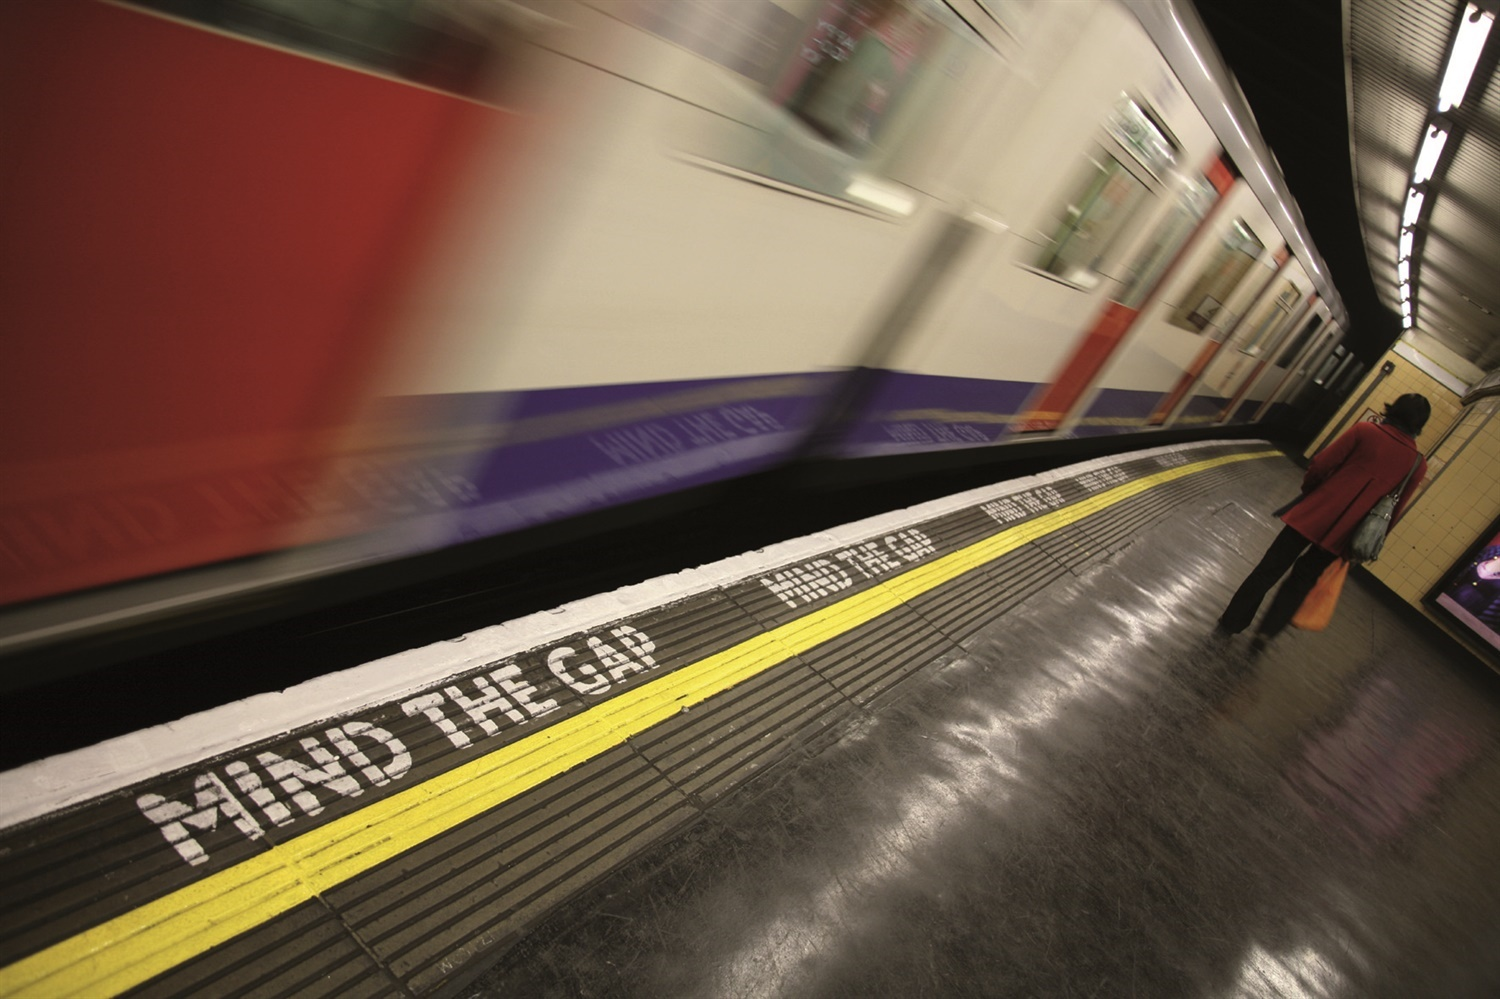 Union calls for TfL workforce review as staff cuts have 'created a death trap'